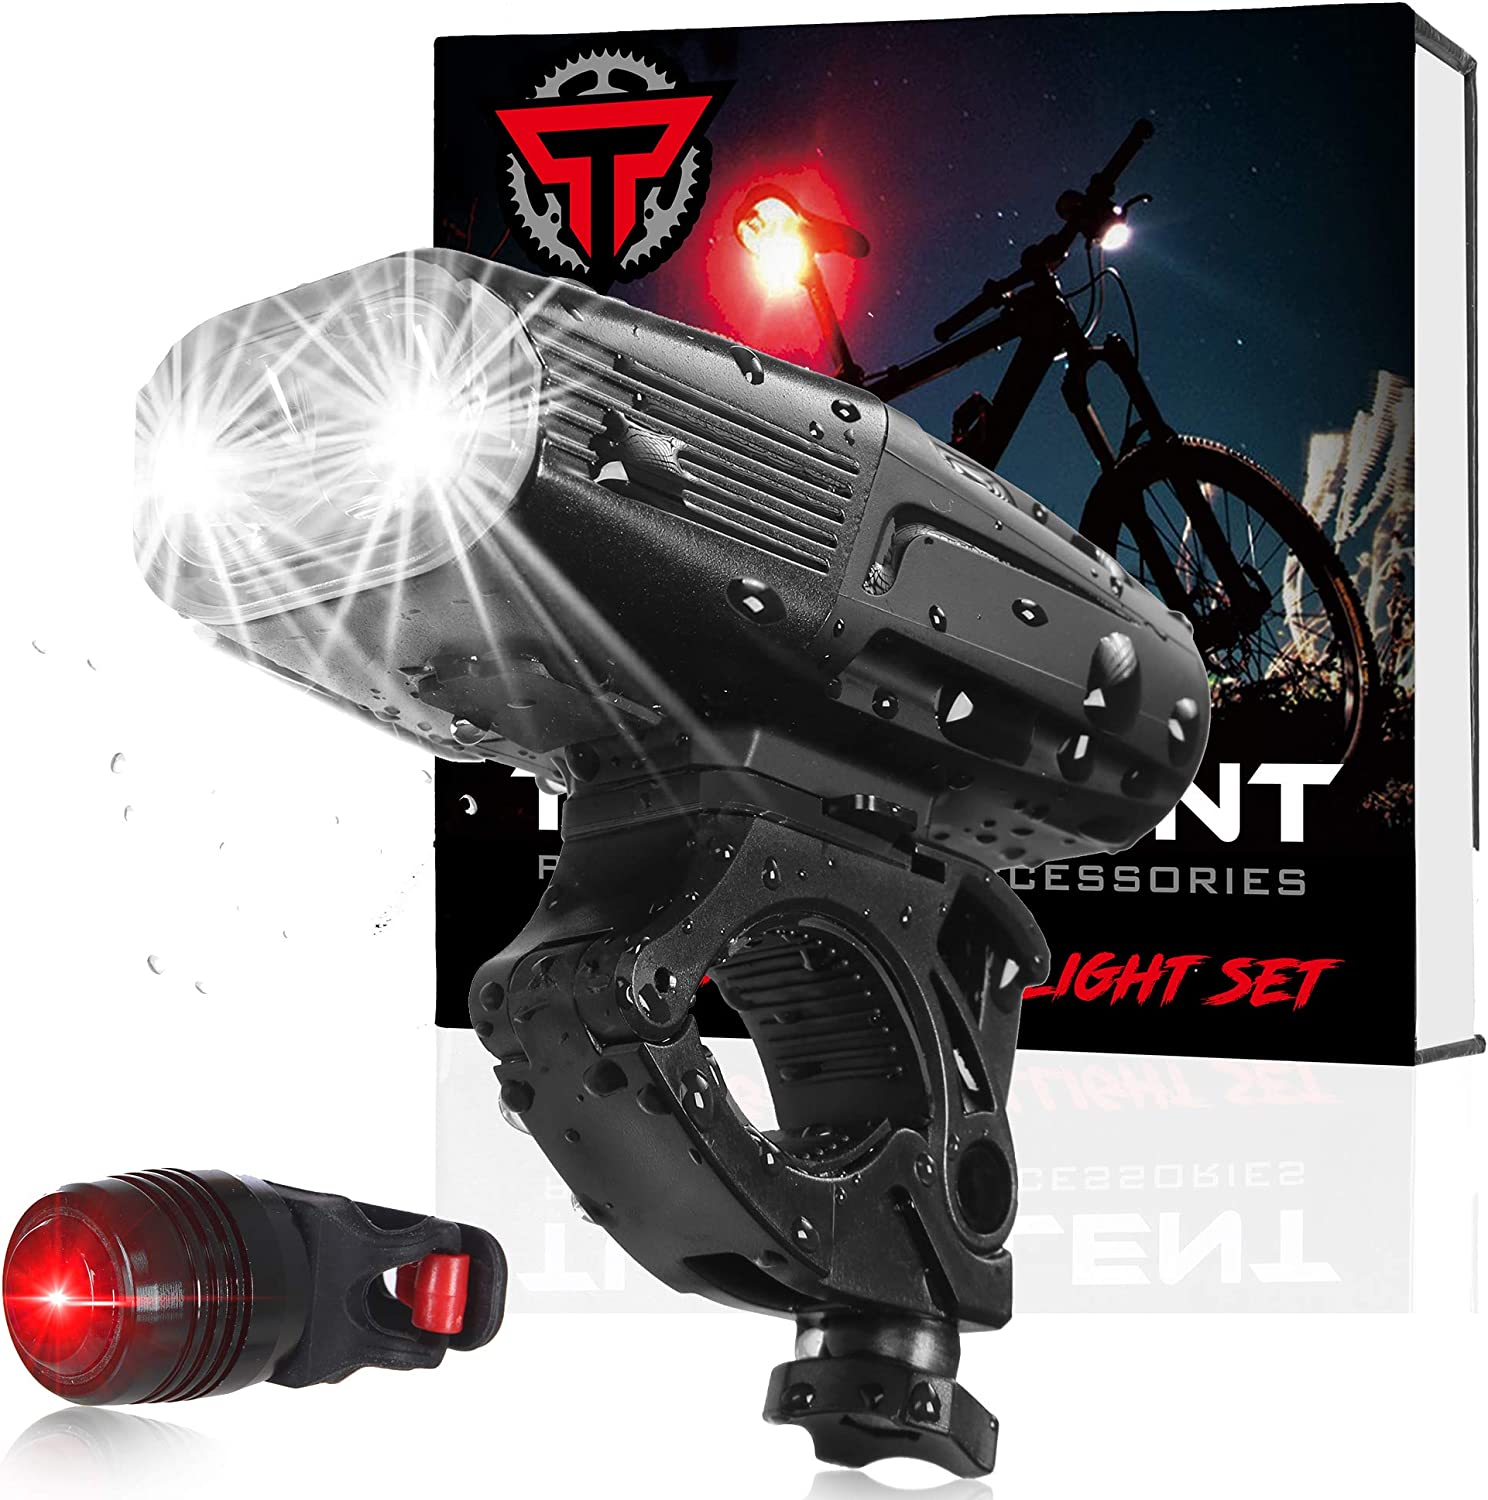 two Front /& Rear 5 led lights set zoom head light torch lamp red bike MTB BMX